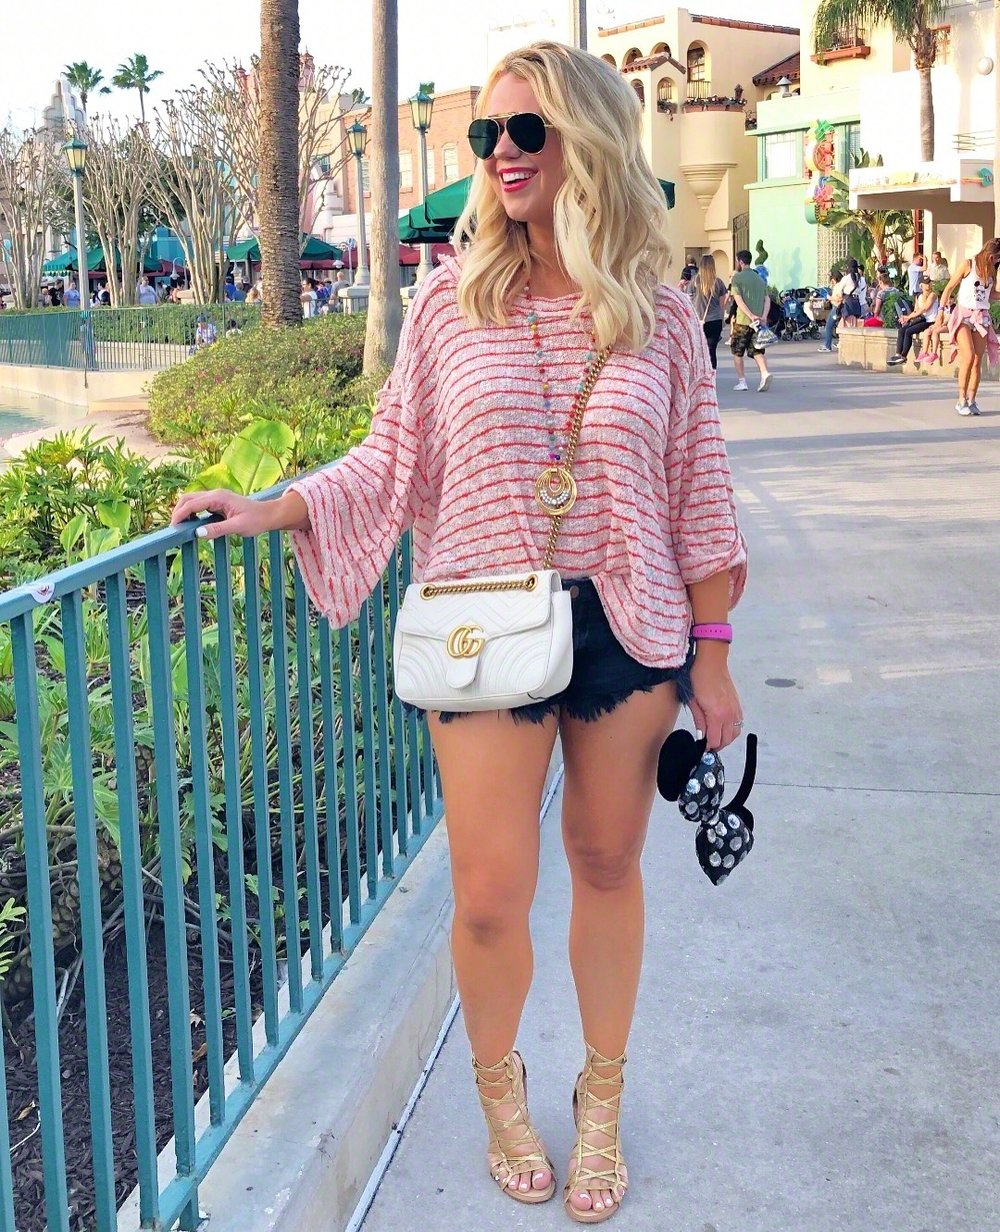 This breezy striped Free People top  is another comfy option for Disney days! I changed into this outfit for dinner and an evening at Hollywood Studios.